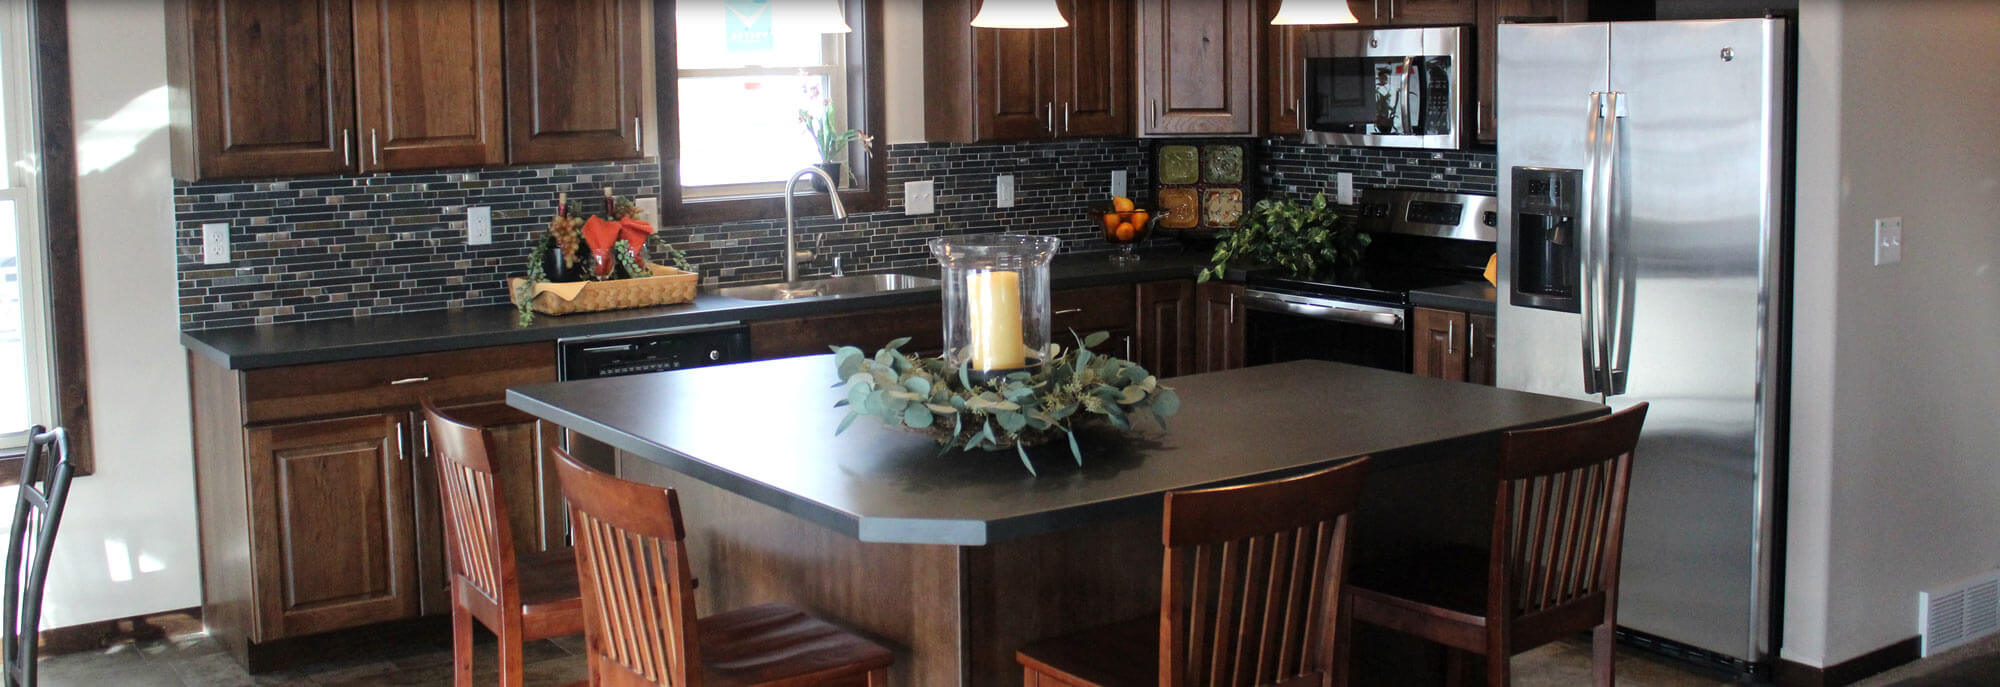 Custom gourmet kitchen in a modular / manufactured home by Factory Home Center